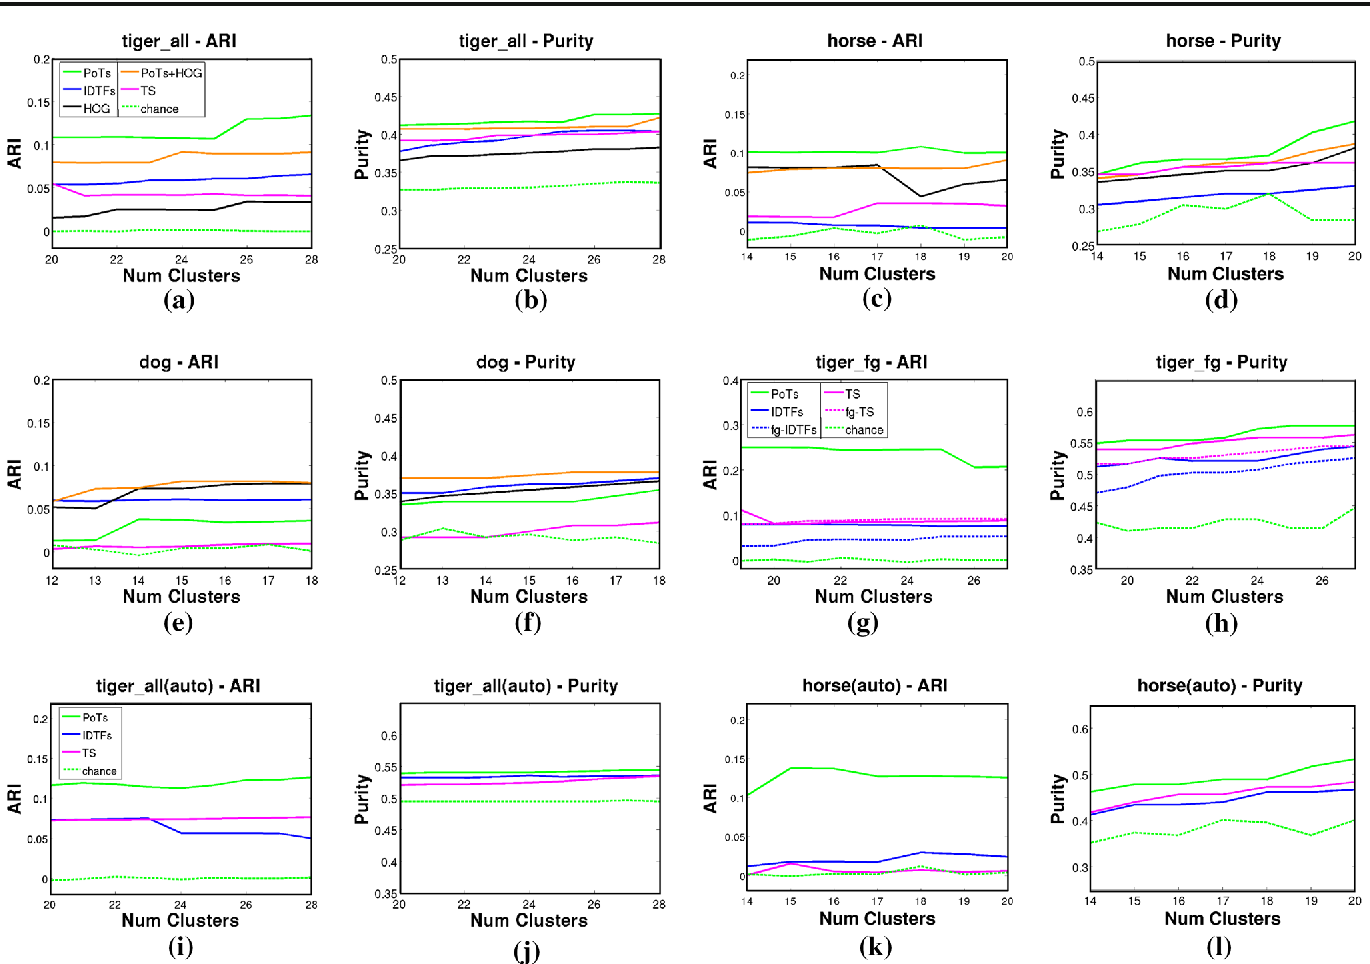 Fig. 13 Results of clustering intervals usingdifferent descriptors (Sect. 7.2.2), evaluated on adjusted rand index (ARI) and purity (Sect. 7.2.1). PoTs result in better clusters than IDTFs (Wang and Schmid 2013) on tigers and horses (a–d). Adding appearance (PoTs + HOG) is detrimental on these two classes, but improves performance on dogs (e, f). IDTFs perform well for dogs, primarily due to the contribution of the HOG channel: compare the full descriptor (blue), with the HOG chan-